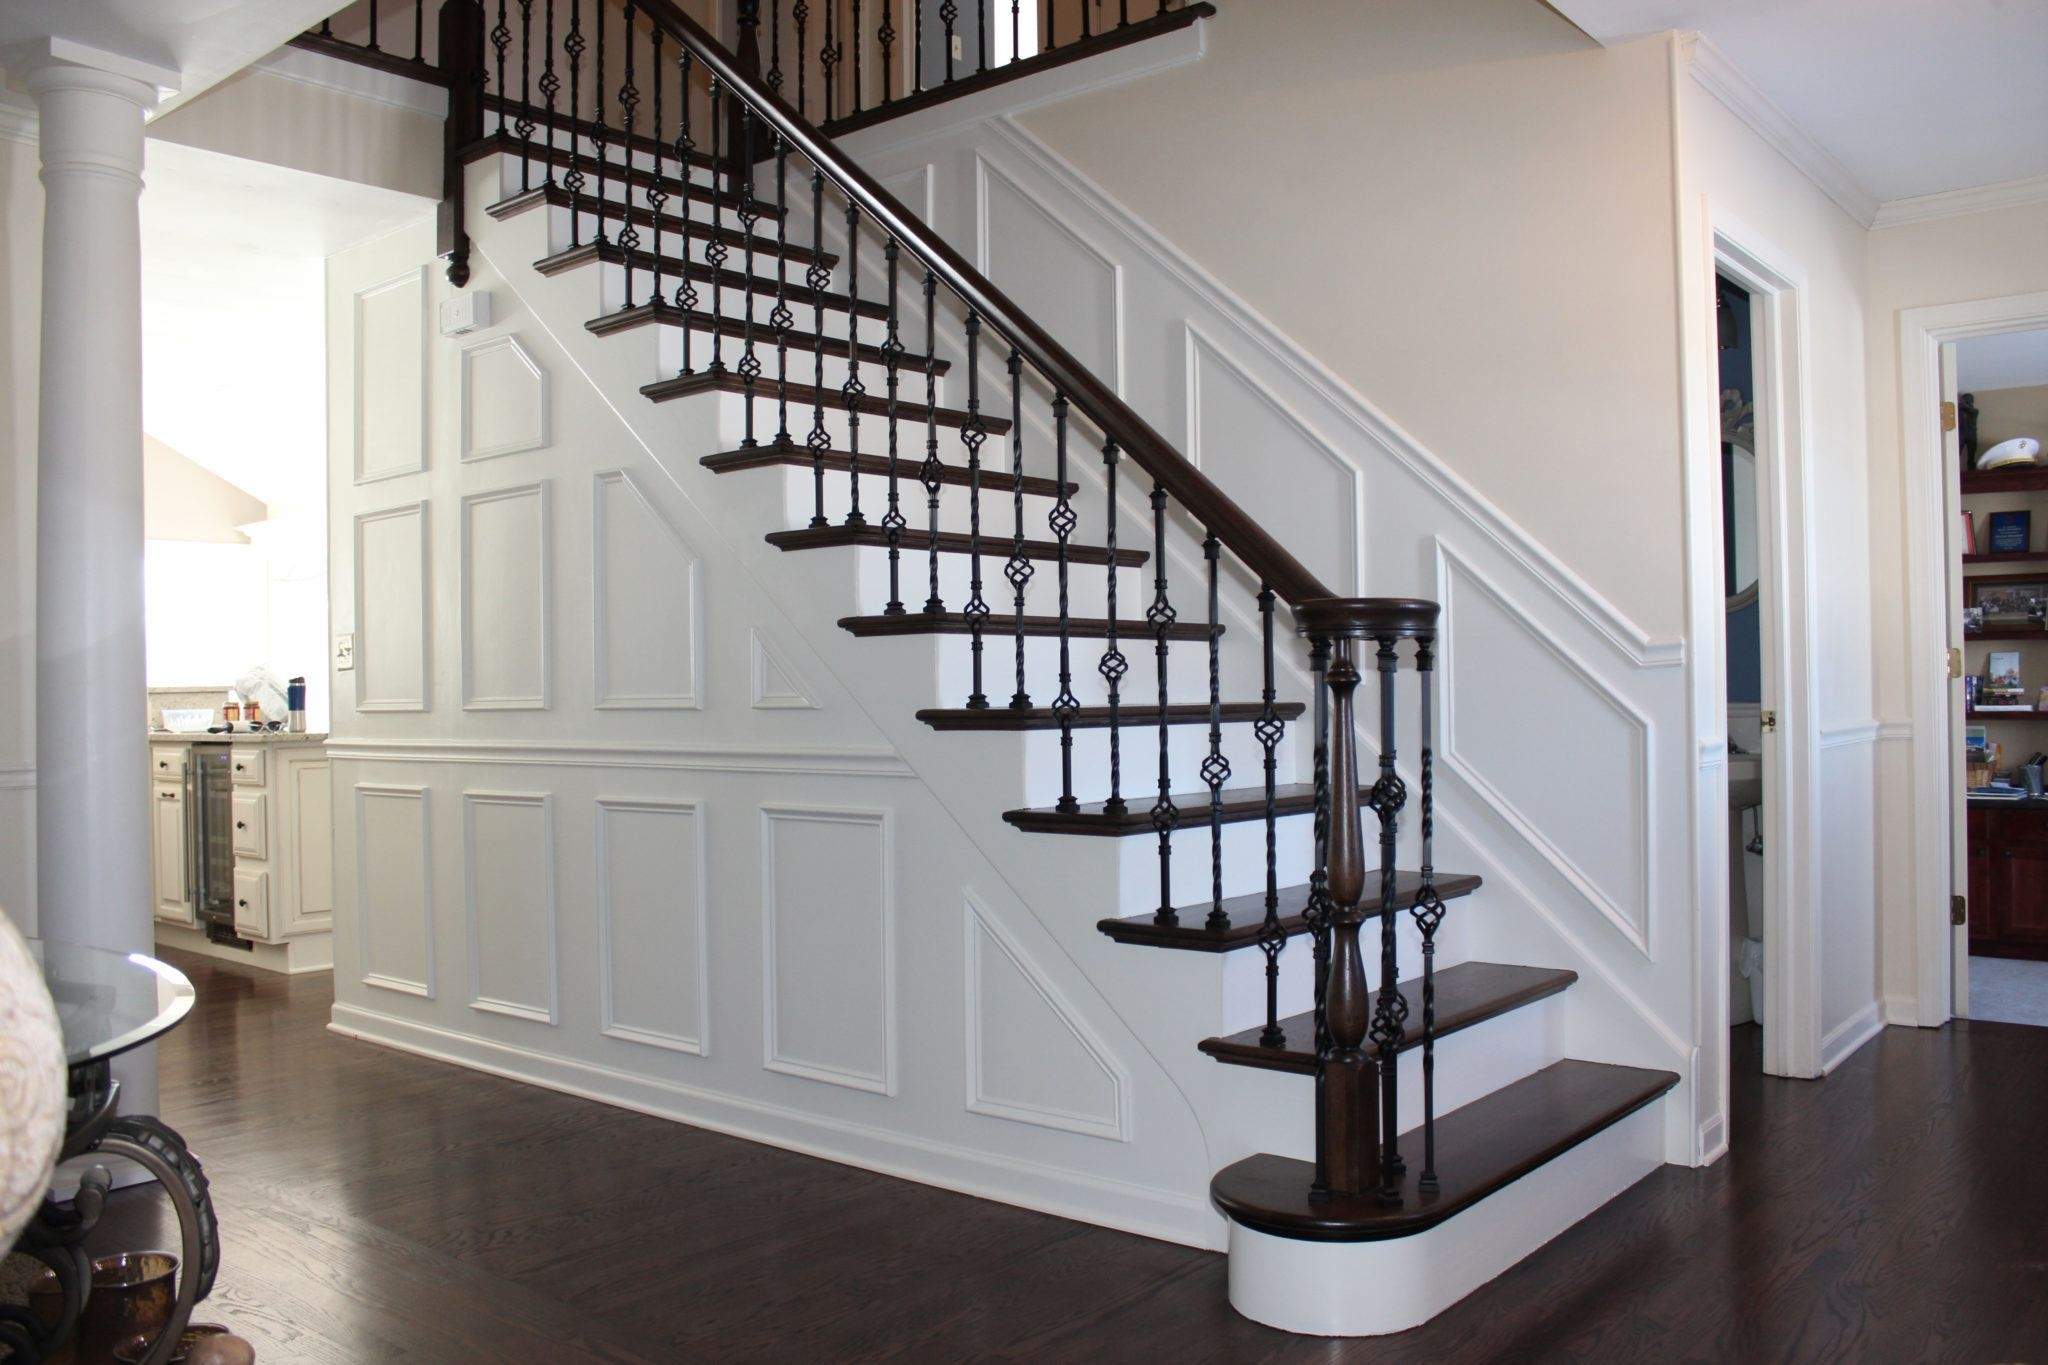 How To Tile Stair Risers The Money Pit | Tile Risers On Wood Stairs | Stair Tread | Decorative | Wood Finish | Stair Outdoors | Wooden